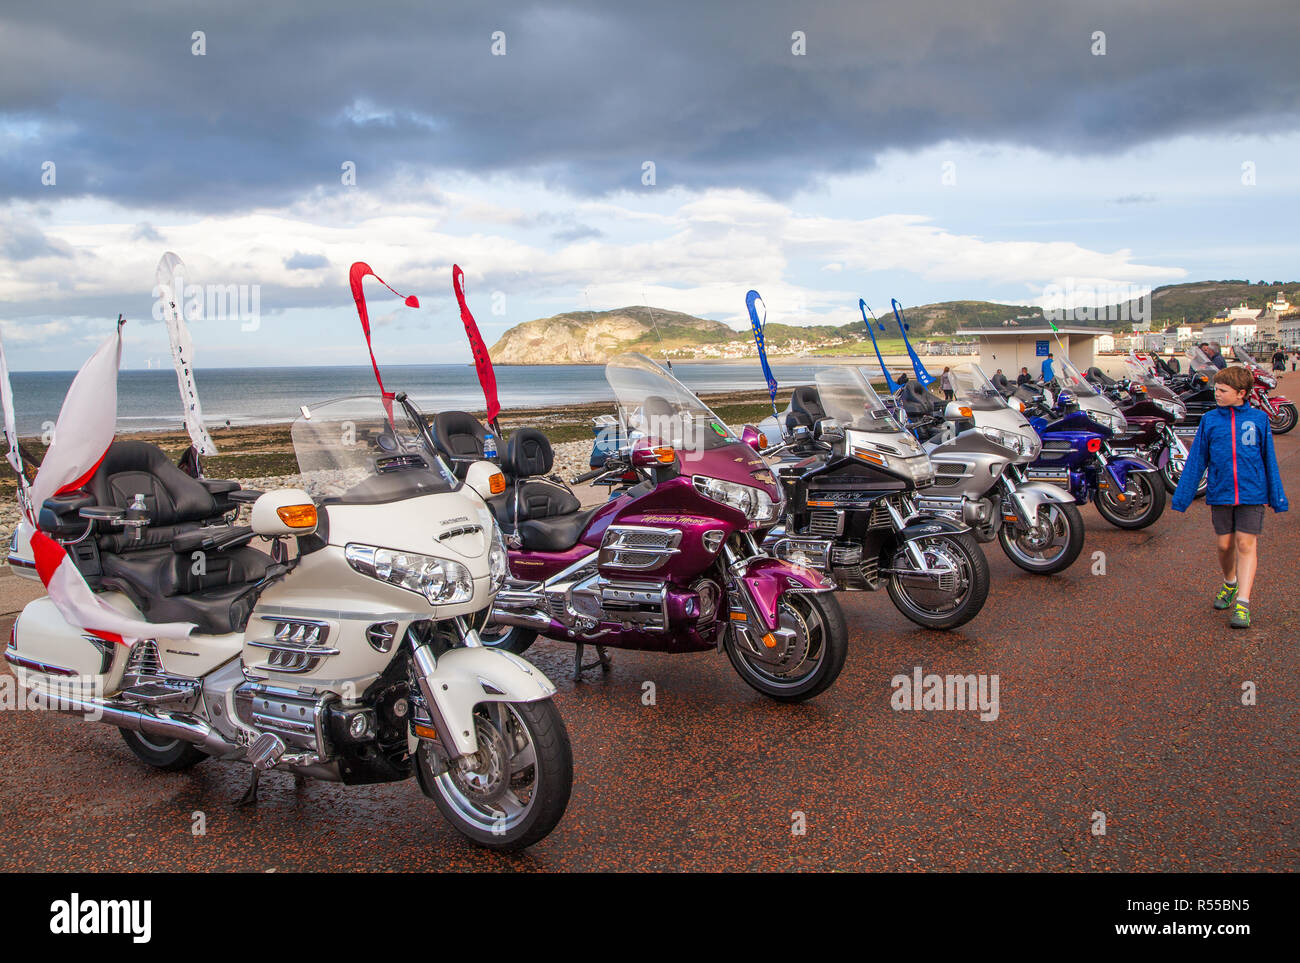 Honda Gold Wing motorcycles at an owners club rally on the